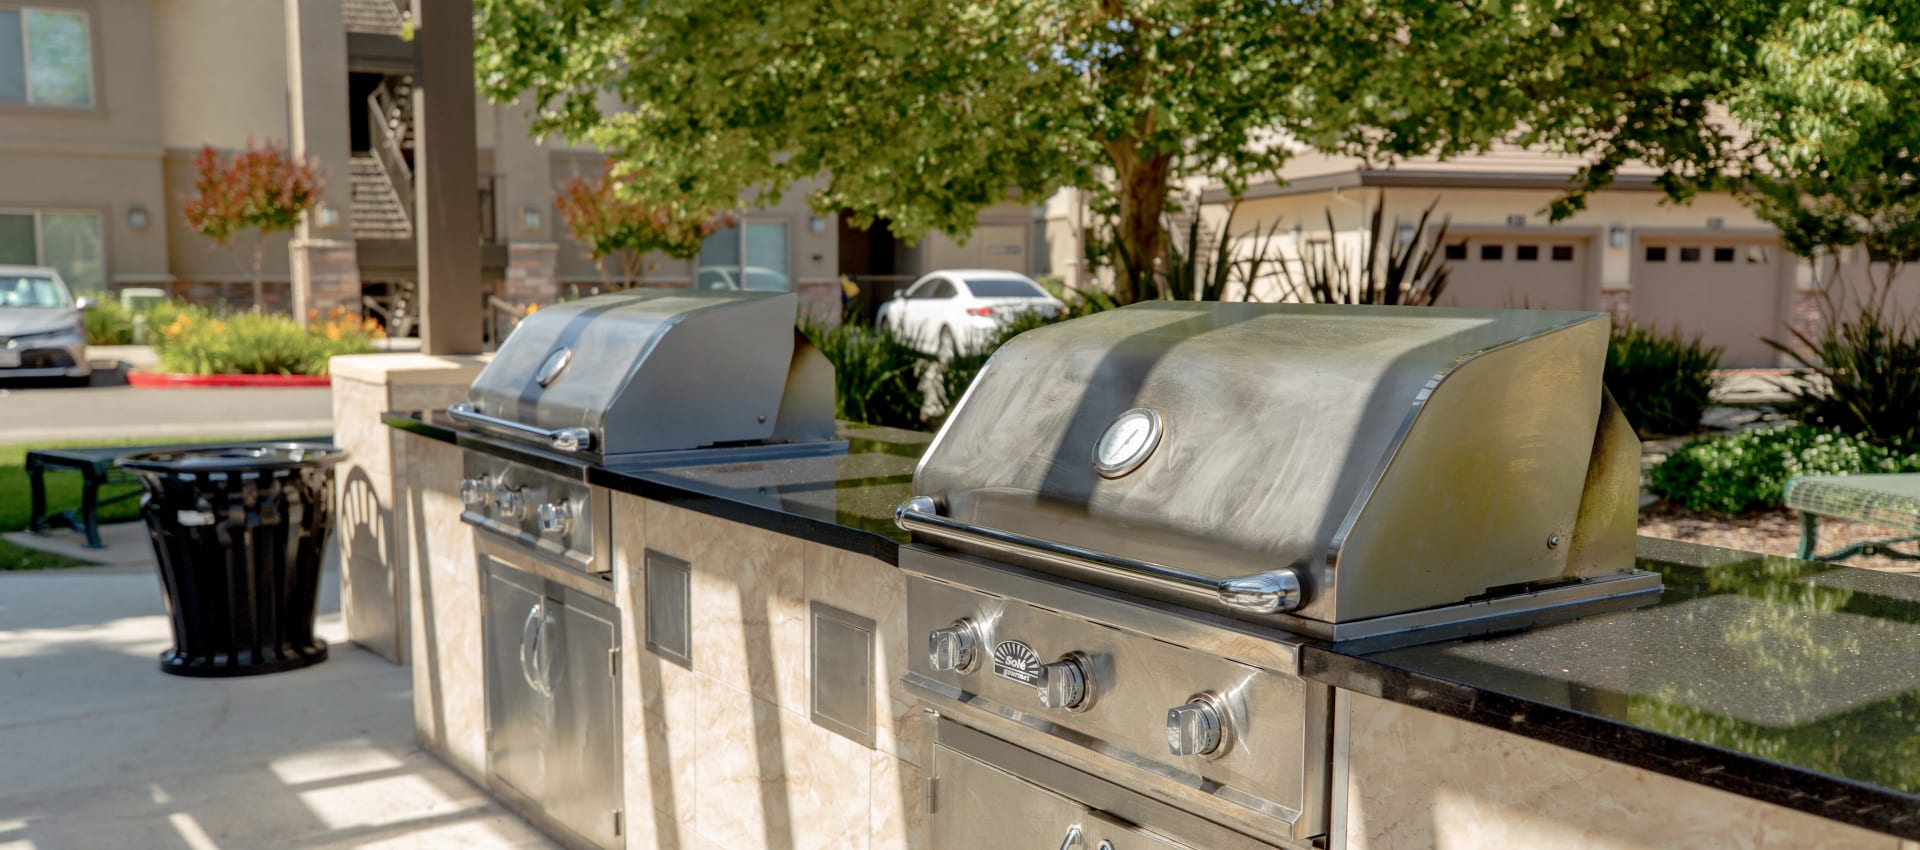 Community grills at Wolf Ranch Condominium Rentals in Sacramento